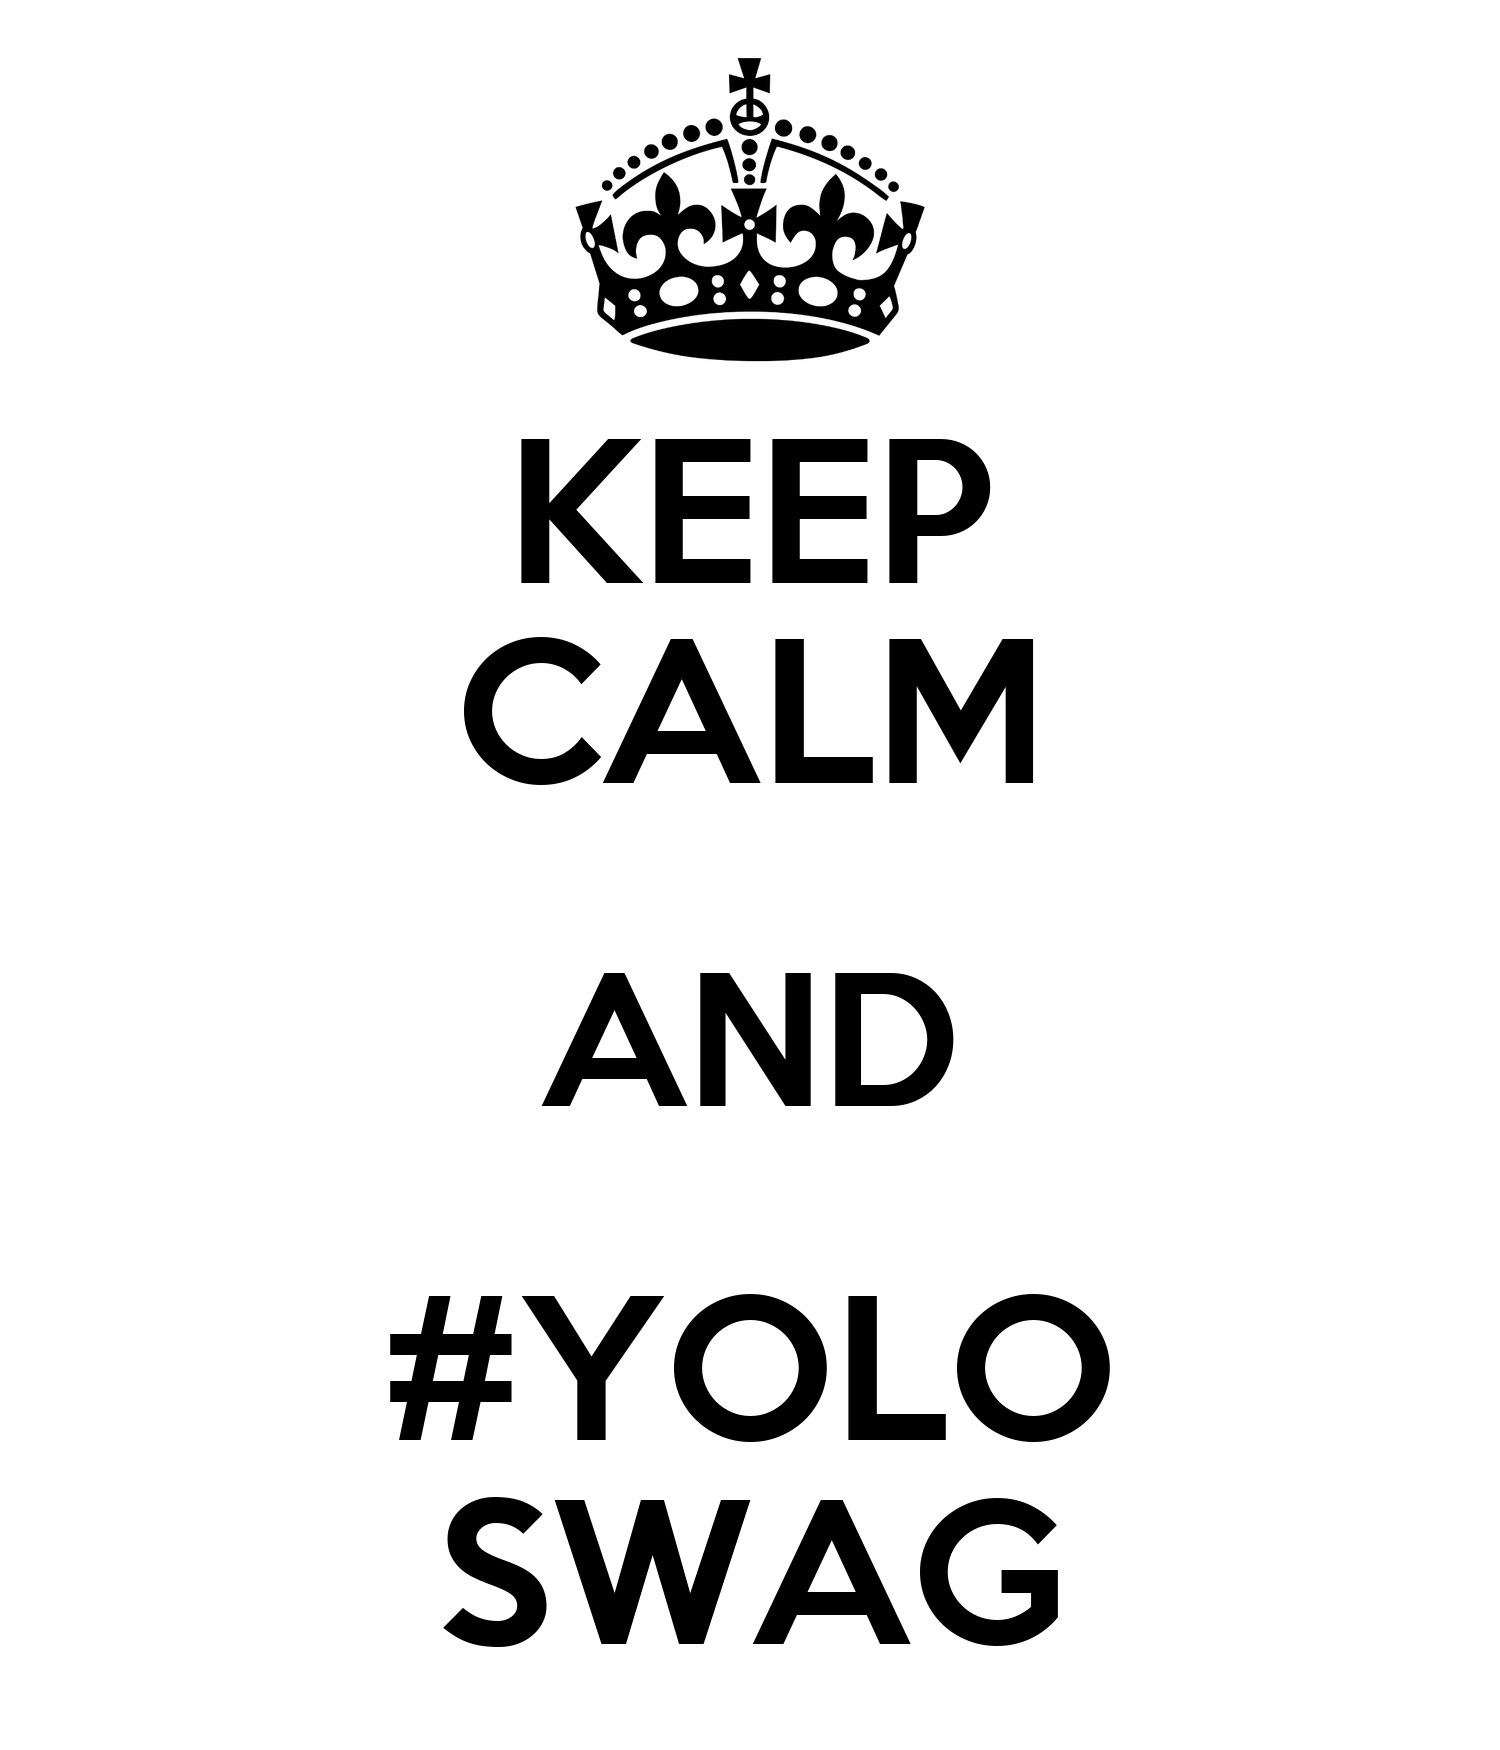 keep-calm-and-yolo-swag-19.png